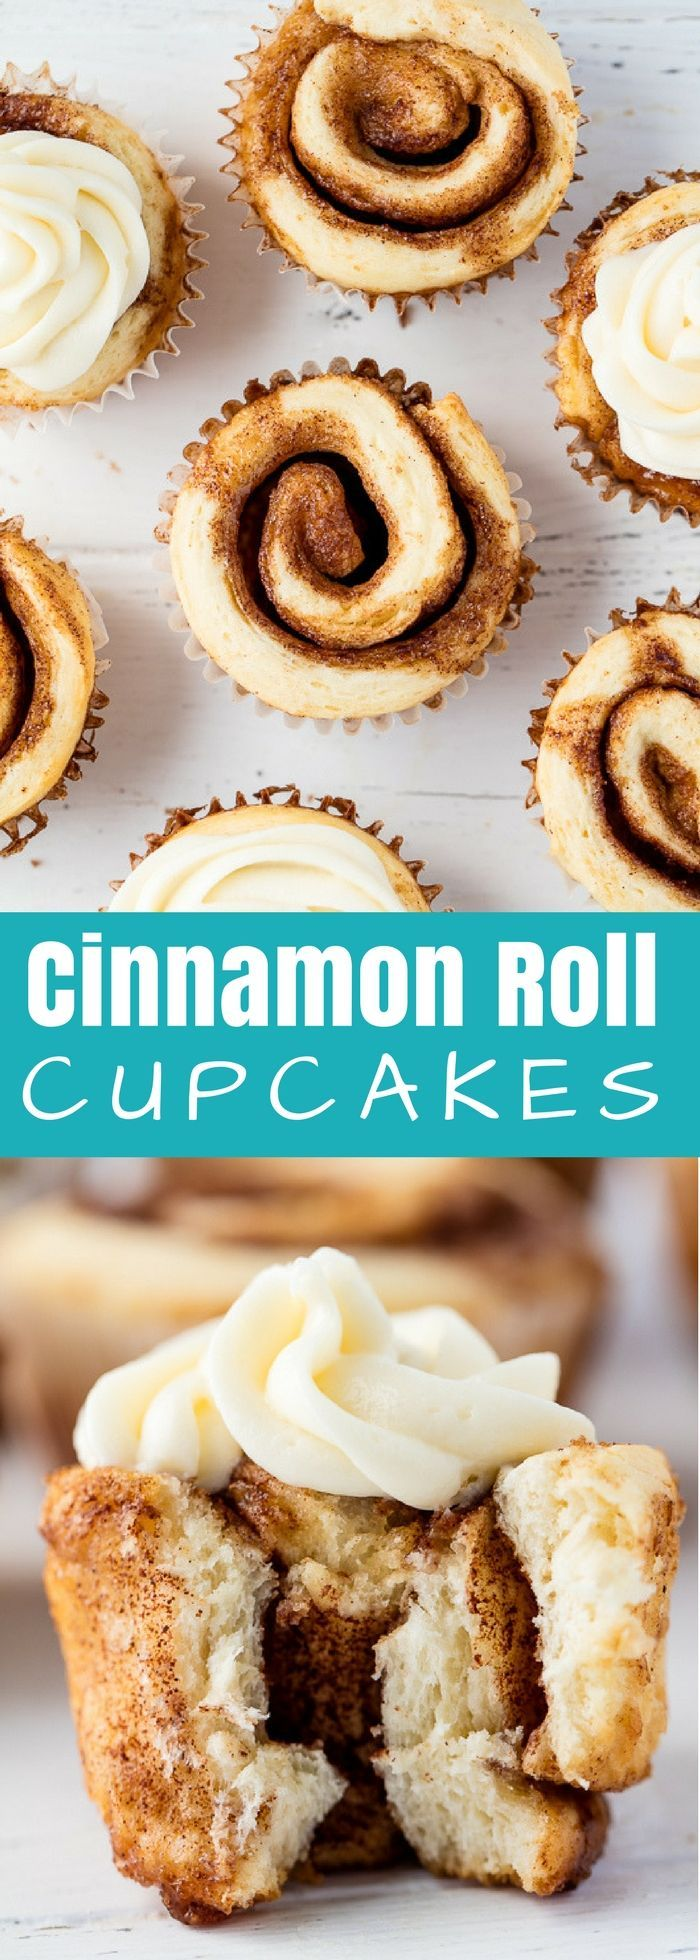 #Cinnamon #Roll #Cupcakes are a fun new way to serve up single sized individual portions.